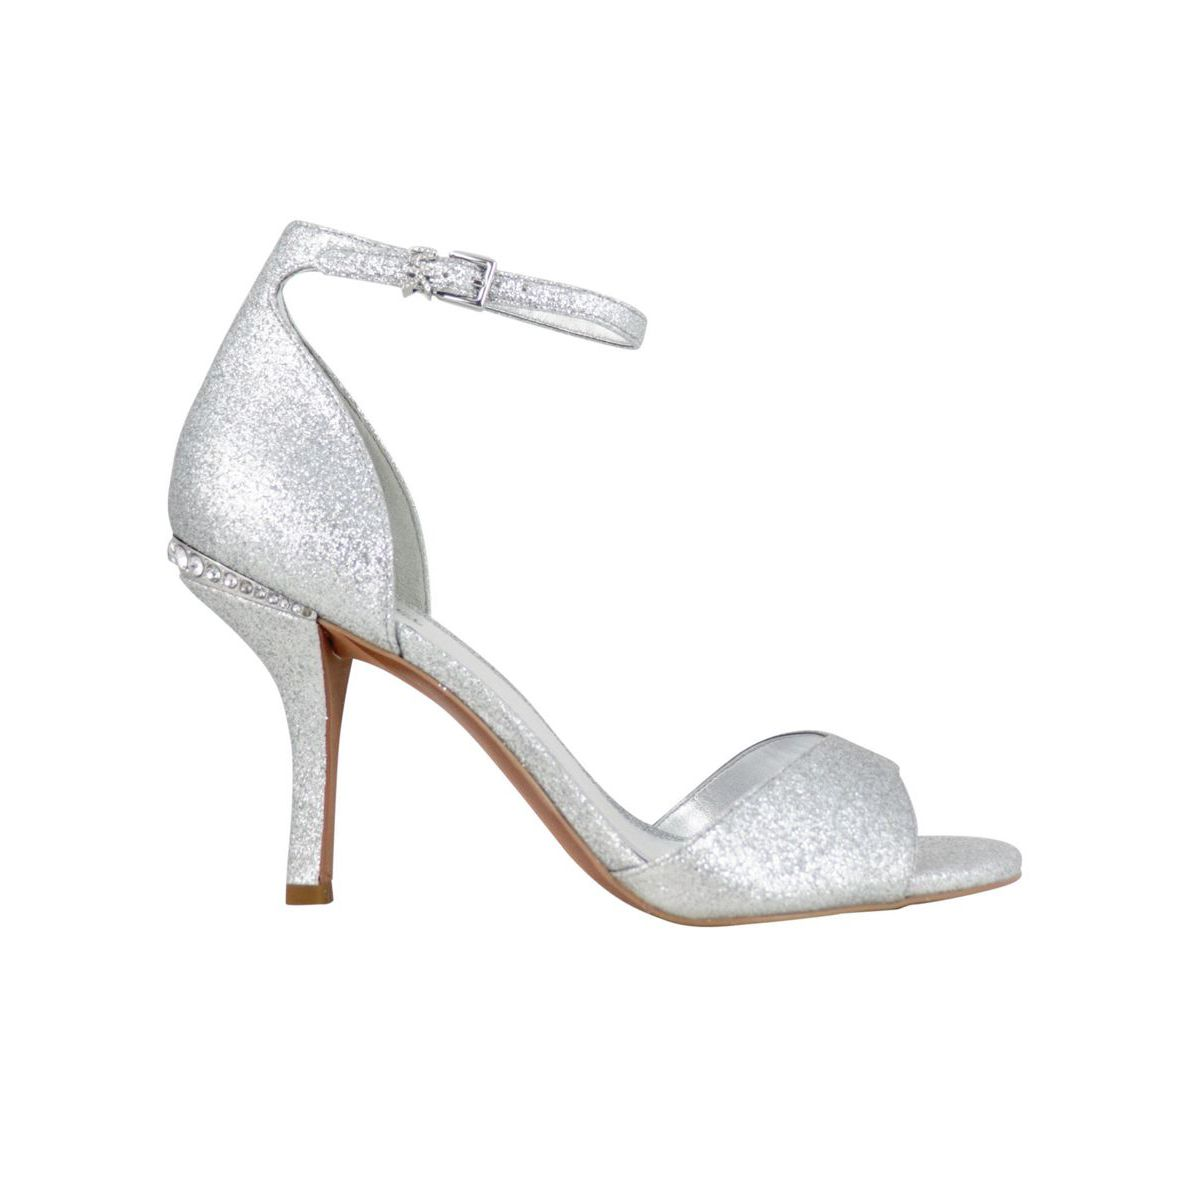 MALINDA lurex leather heeled sandal Silver Michael Kors